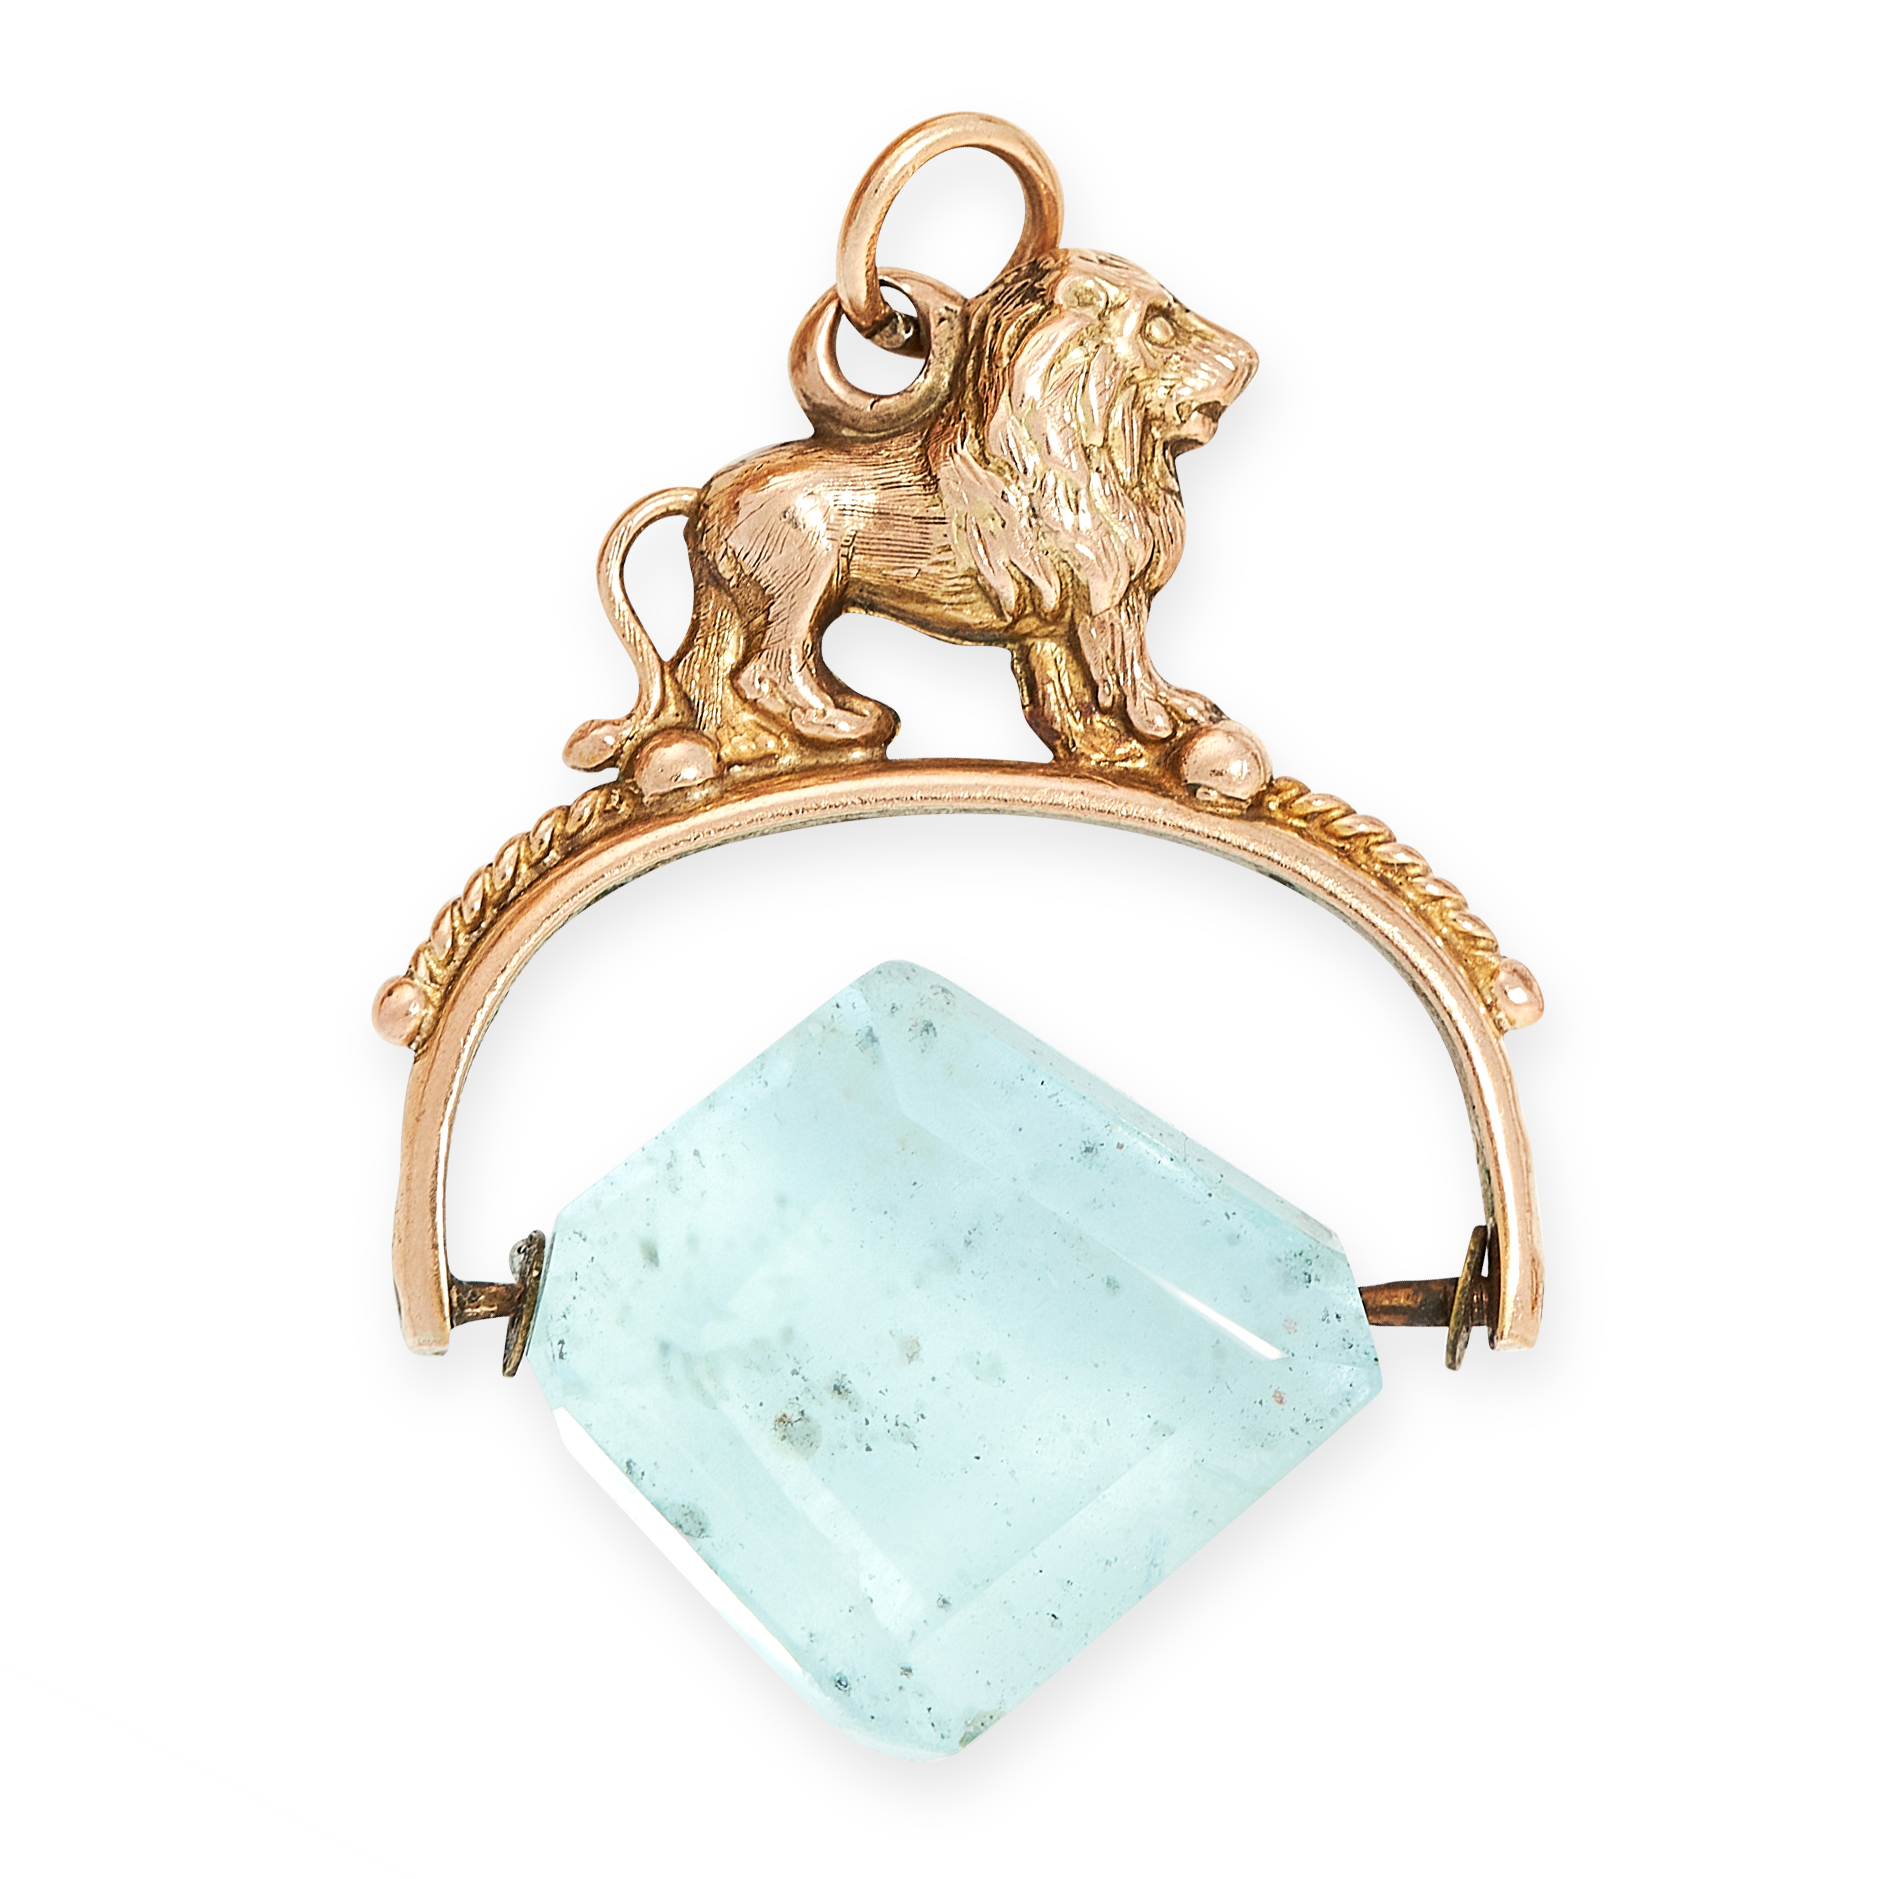 AN AQUAMARINE FOB PENDANT in yellow gold, set with a polished aquamarine crystal of 31.13 carats,